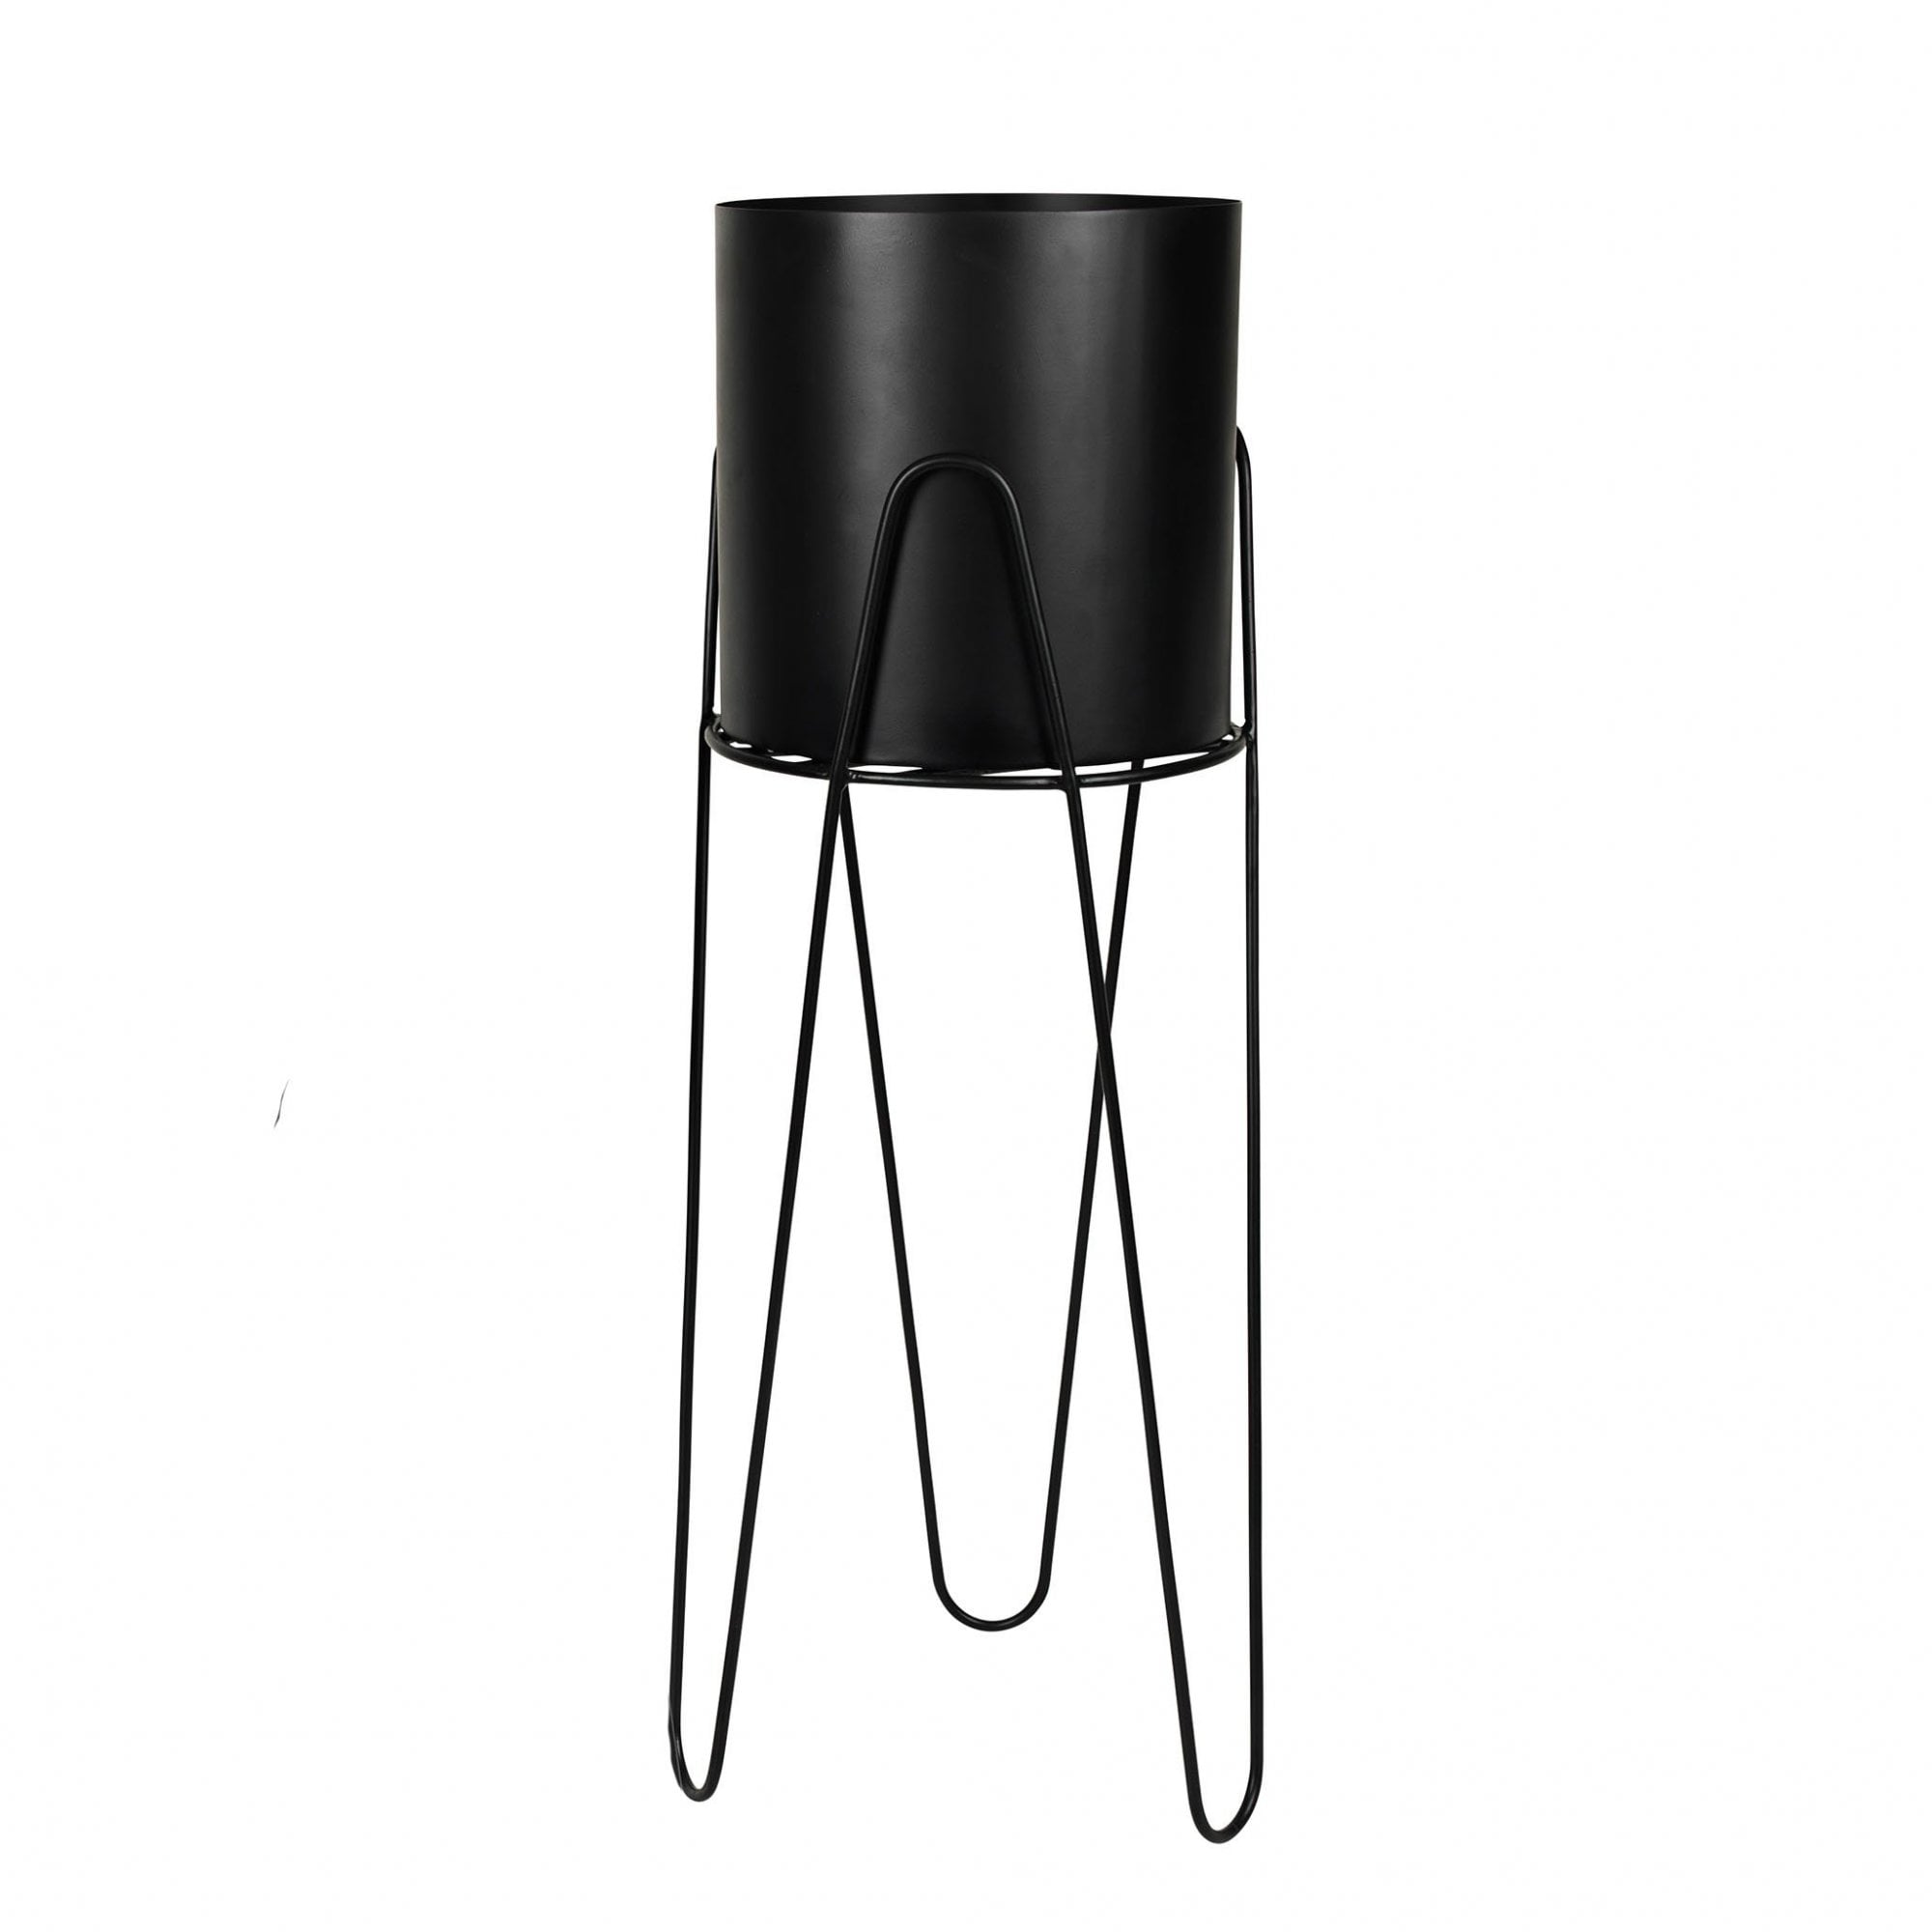 Broste Metal Plant Pot Stand Black Black By Design